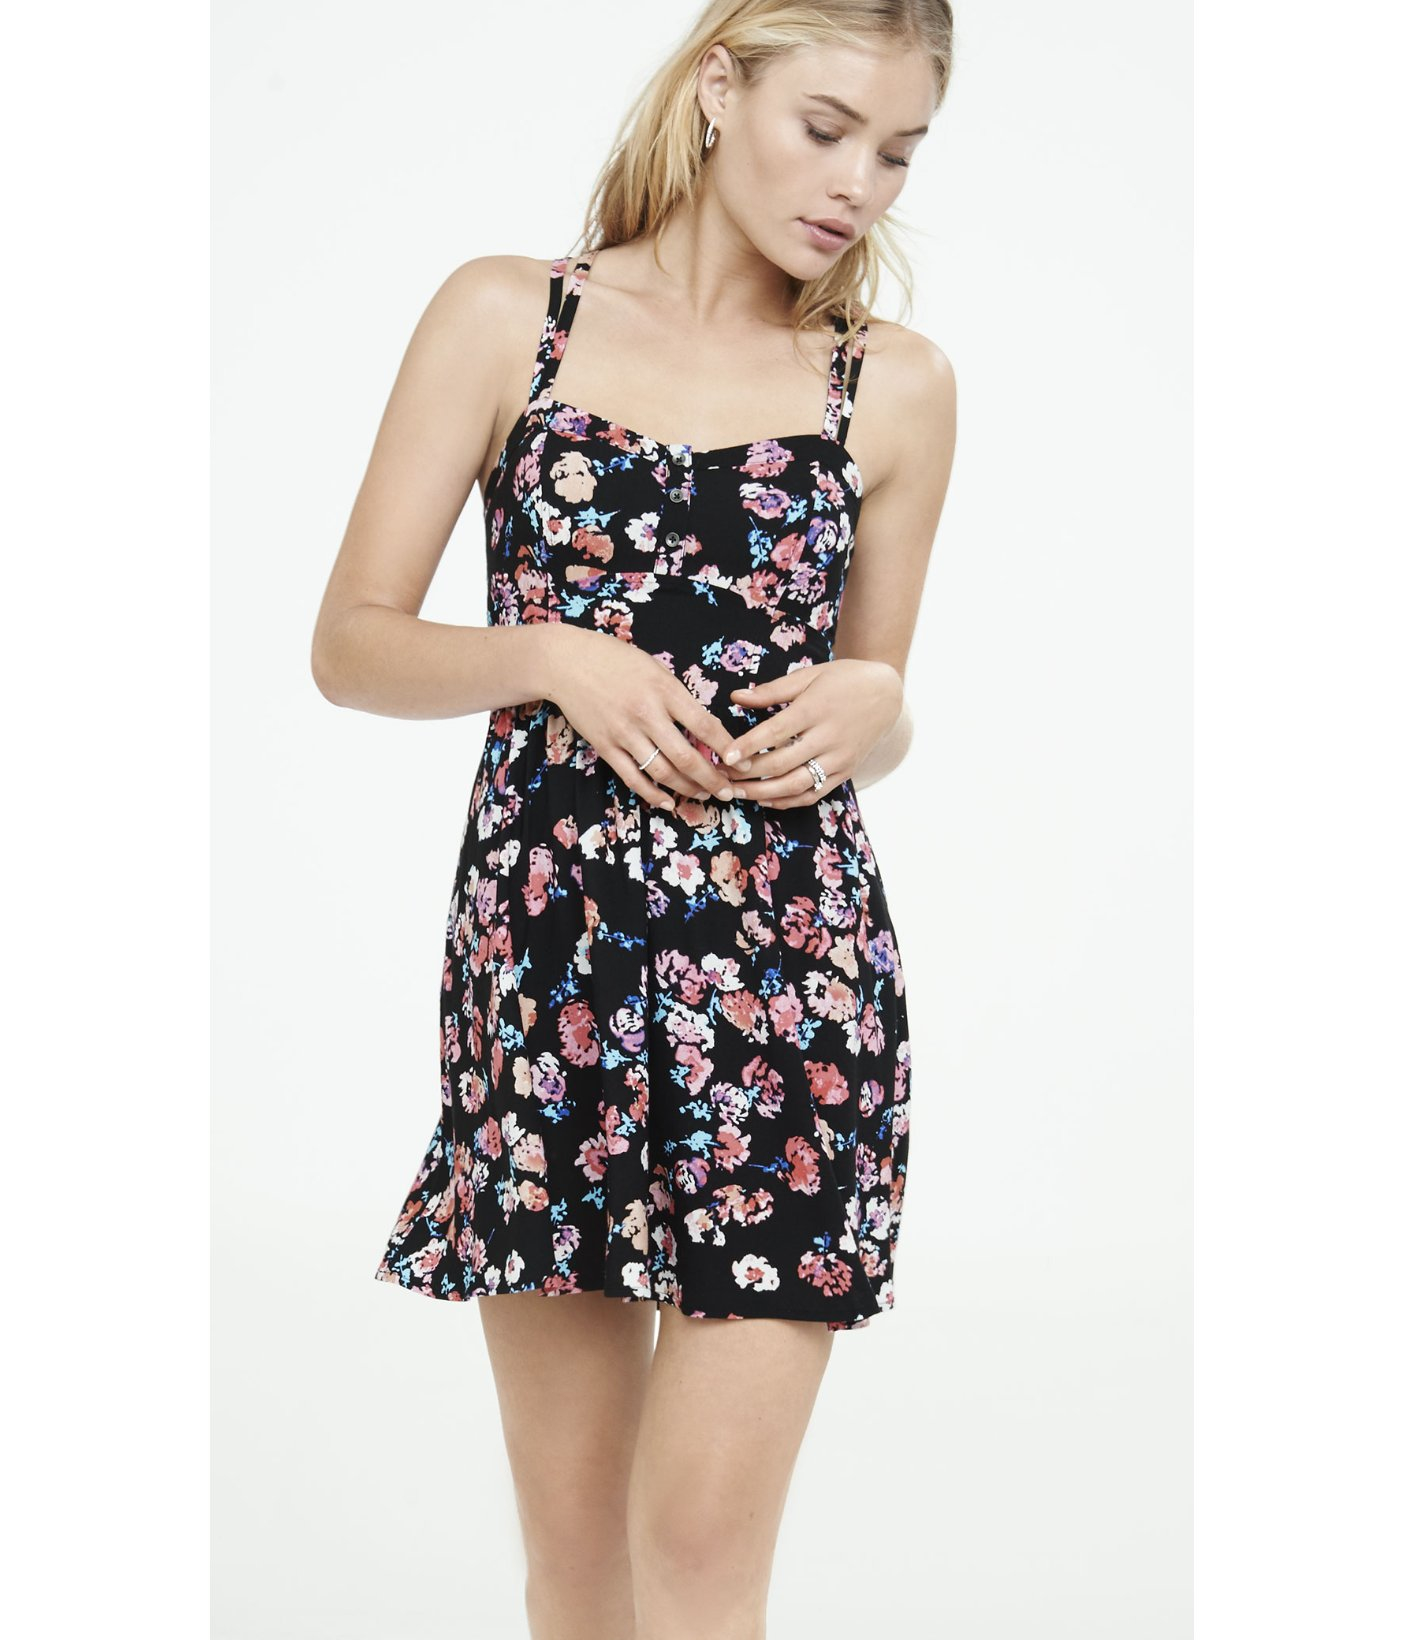 9df5b875978 Express Floral Print Strappy Cami Sundress in Black - Lyst